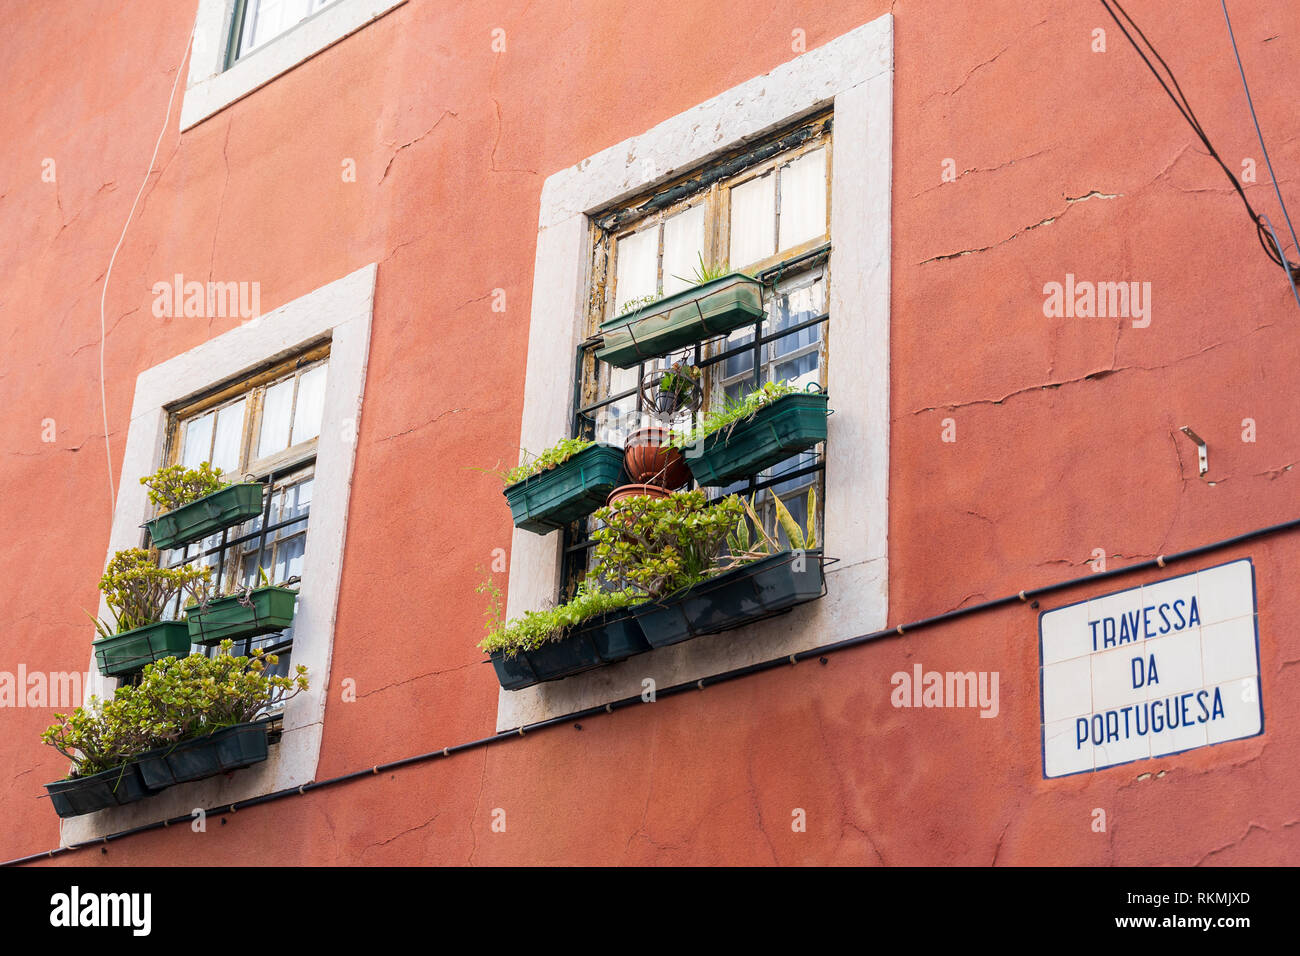 Lisbon, Portugal - 01/03/19: Window succulent boxes and plant boxes, pot plants. Old red building, white window frames, Rusty ancient window frame wit - Stock Image